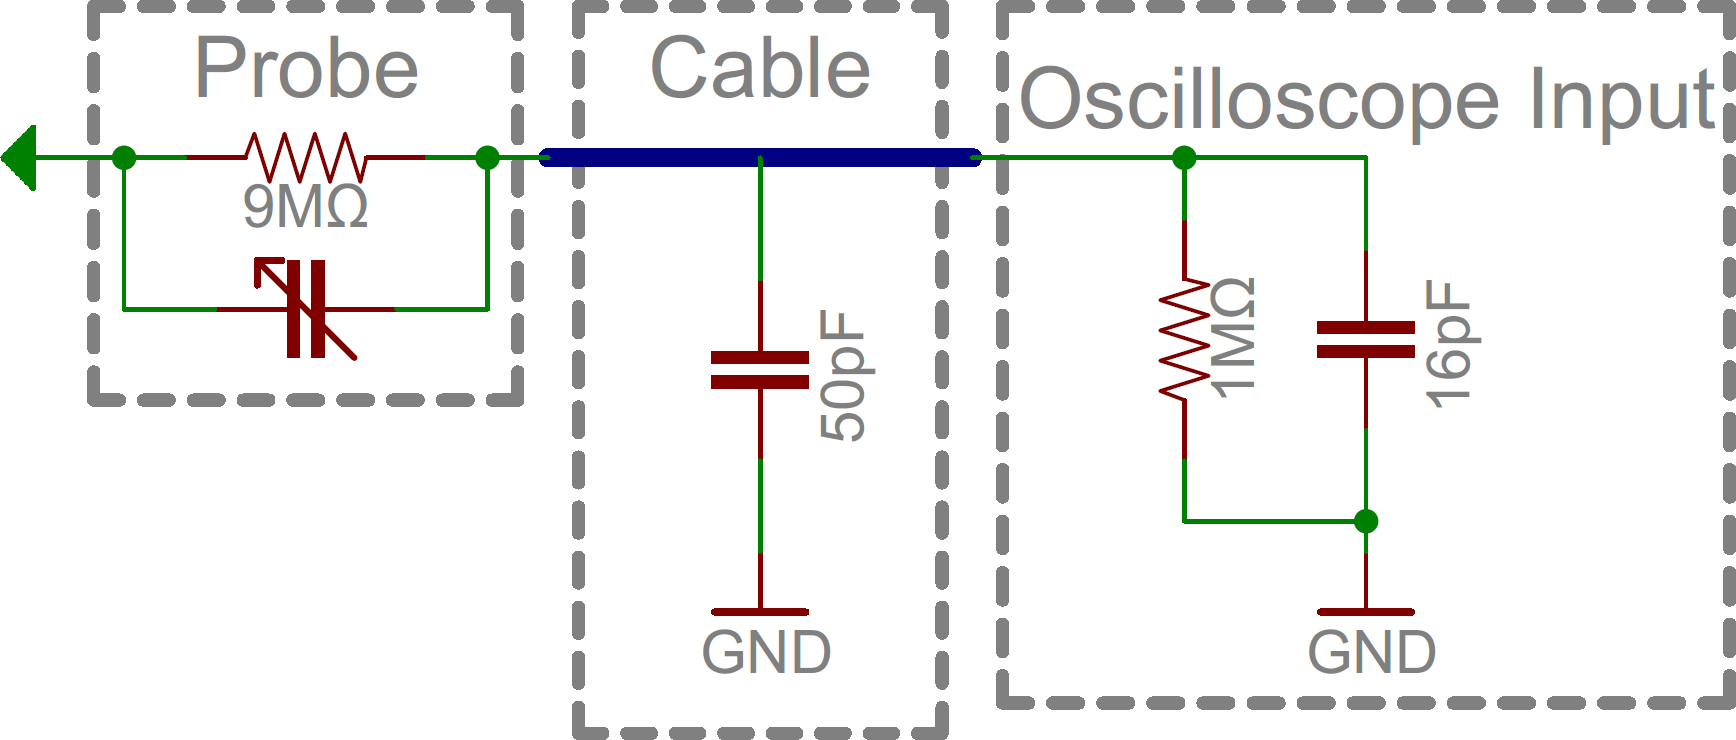 How To Use An Oscilloscope Related Image With Digital Voltmeter Circuit Simplified Schematic Of Probe Transmission Wire Scope Input